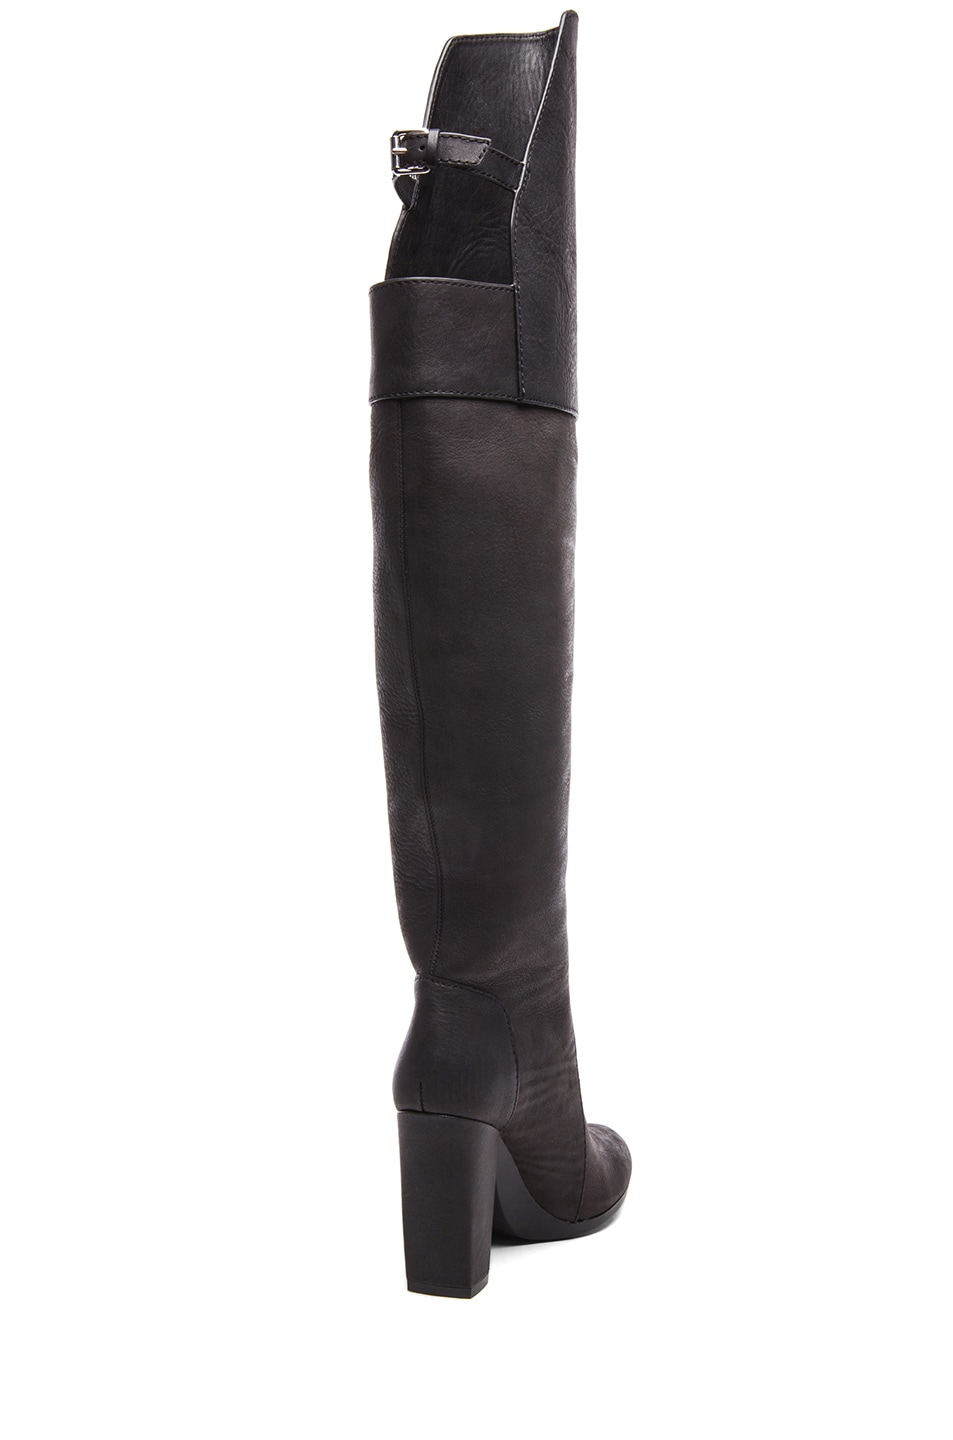 Image 3 of 3.1 phillip lim Ora Leather Over the Knee Boots in Black